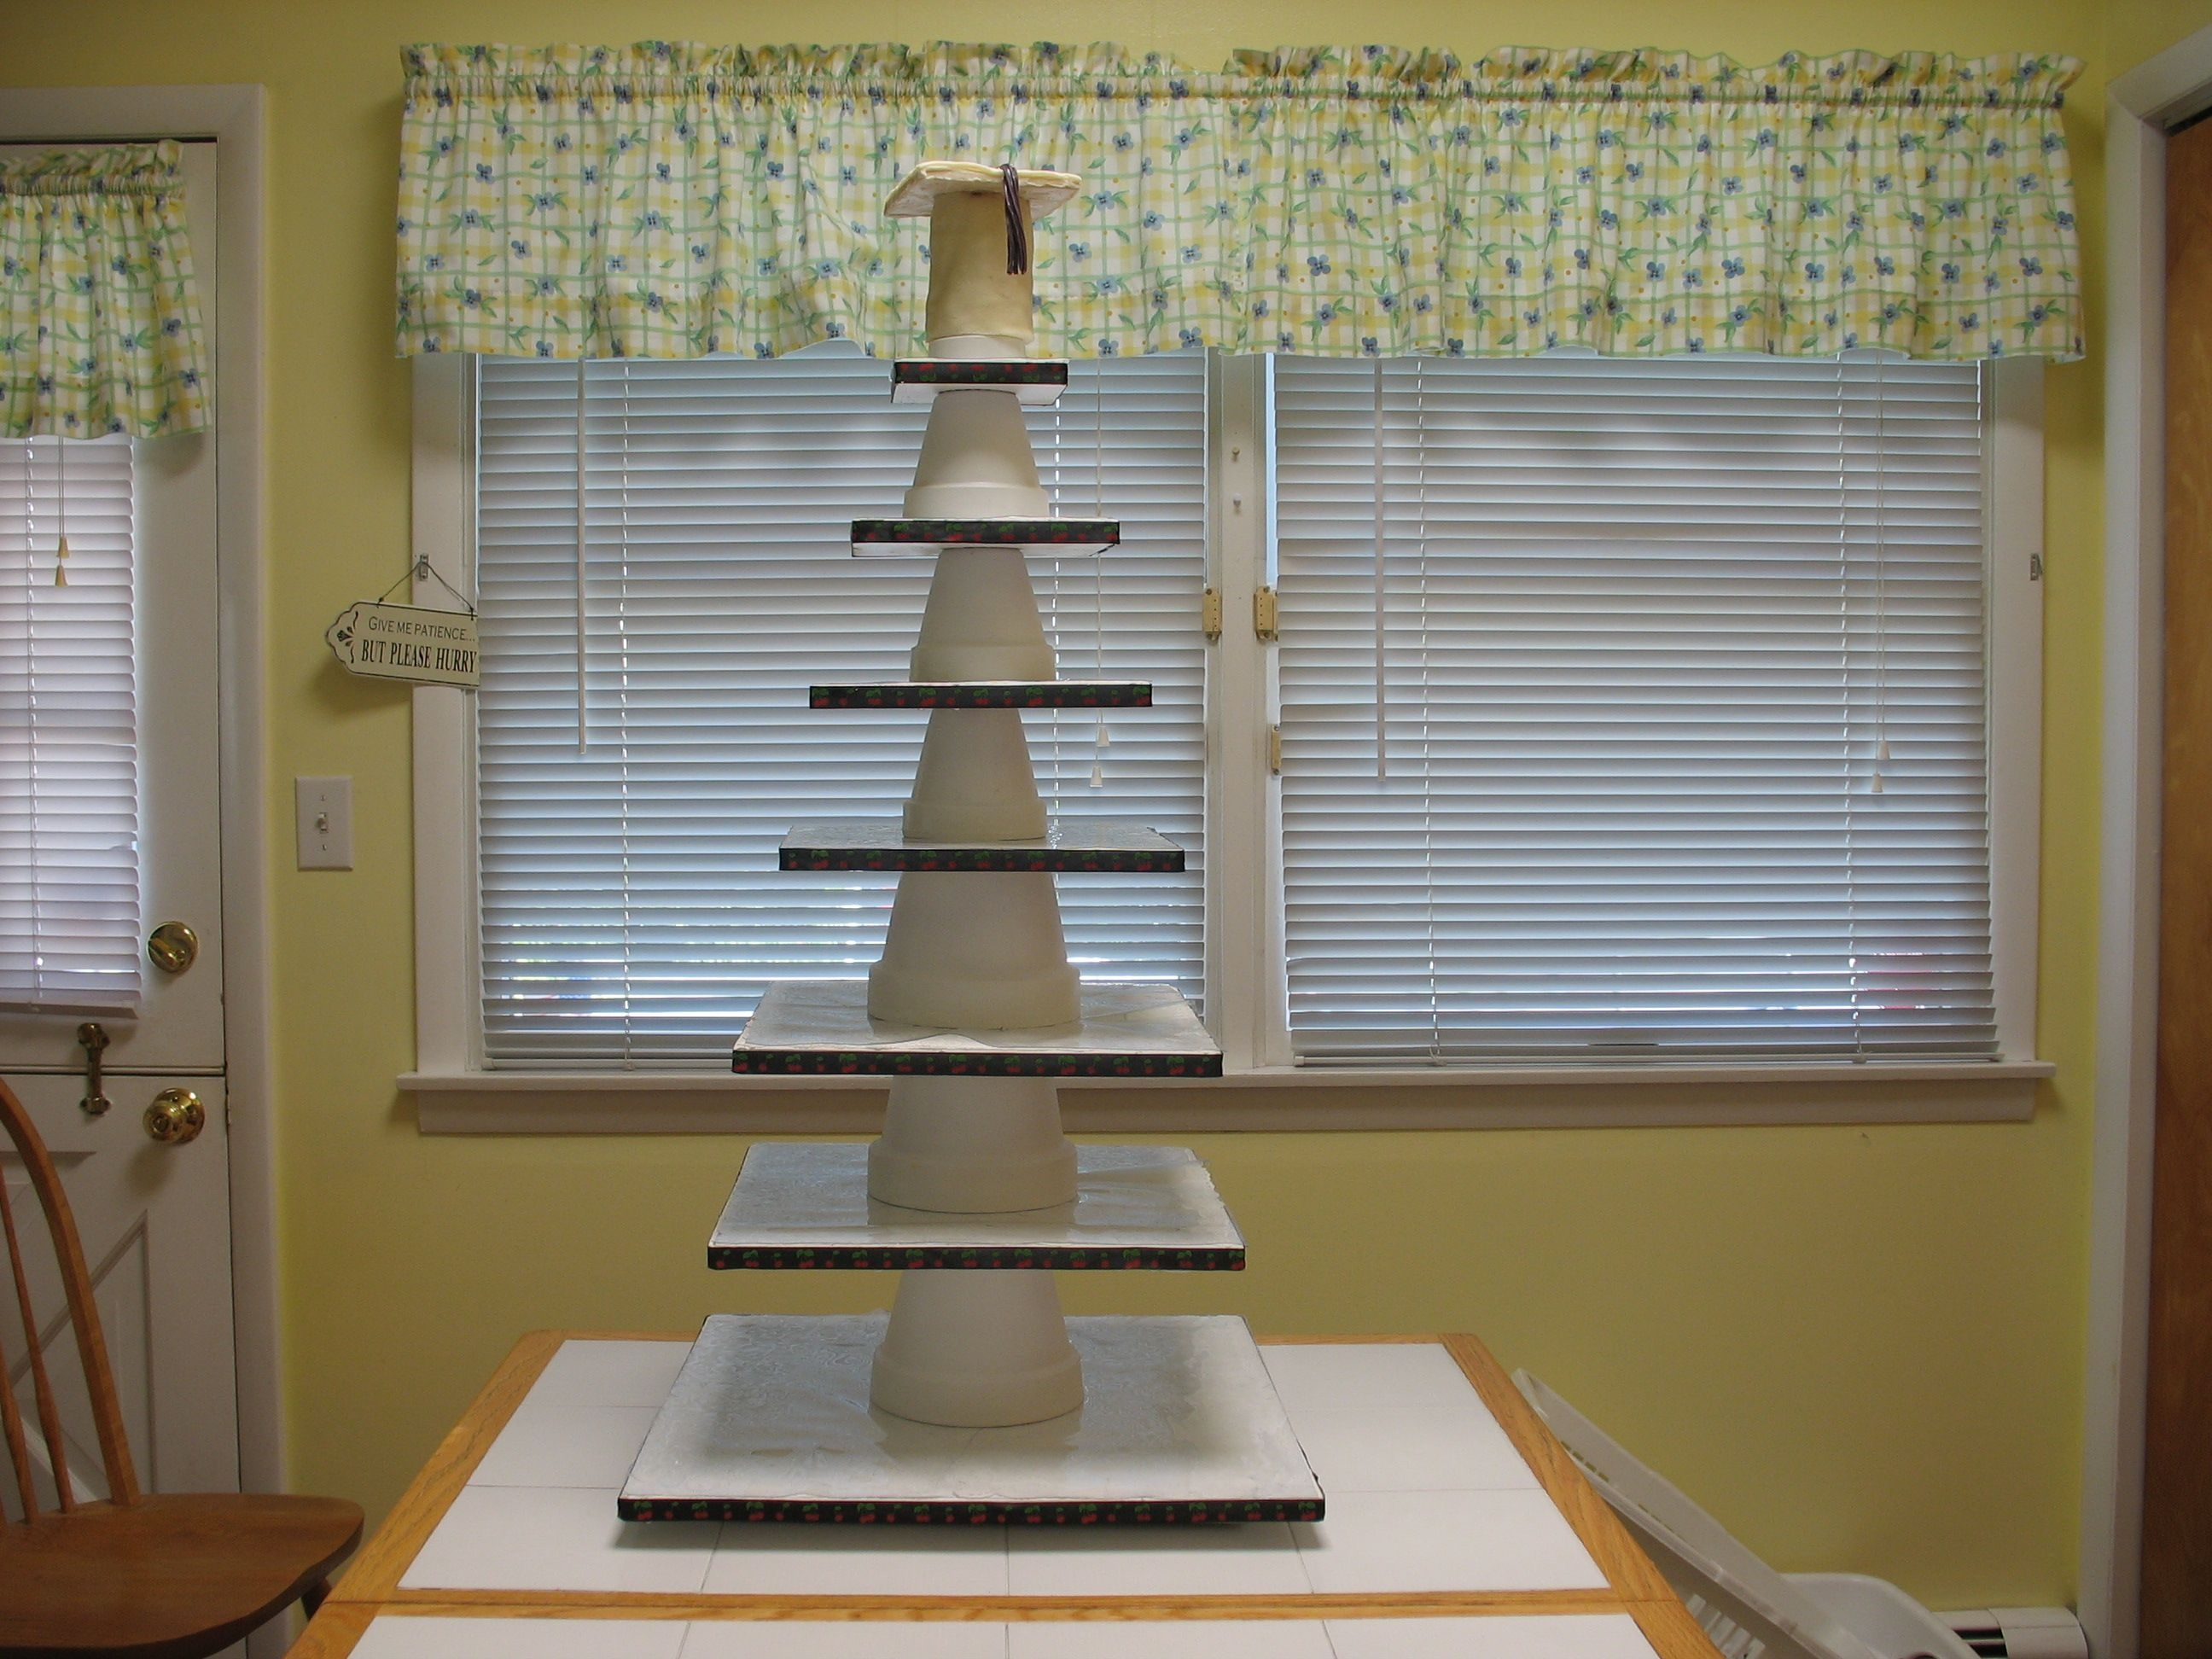 7-Tier Cupcake Tower I made this 7-tier cupcake tower from plywood and flower pots. The plywood is covered with doilies then vinyl tablecloth material. The...